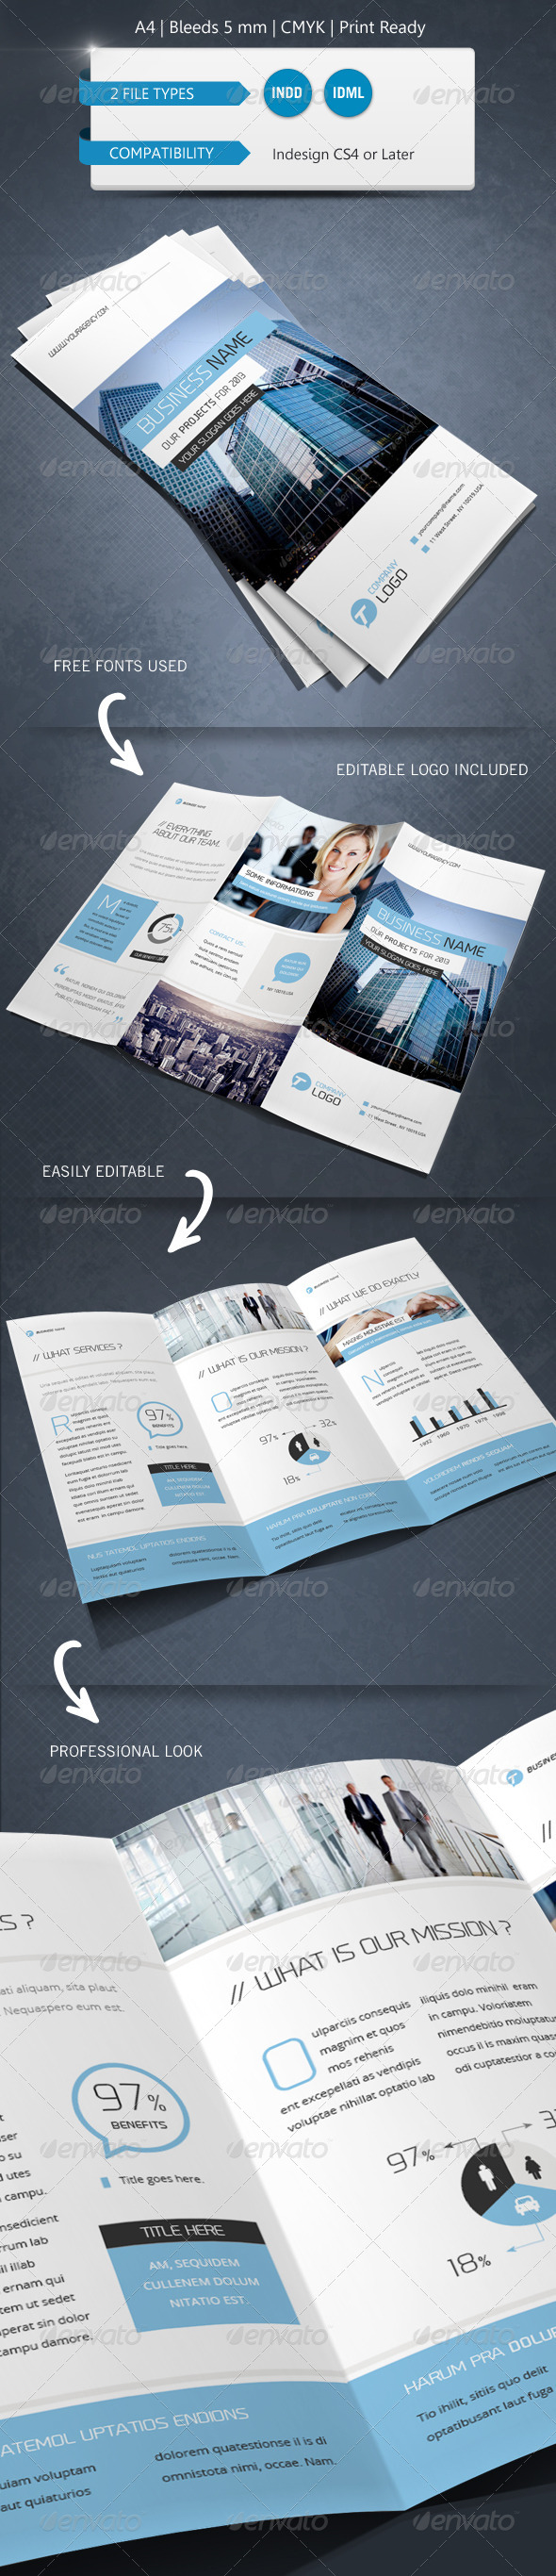 GraphicRiver Corporate Indesign Trifold Brochure Template 6092046